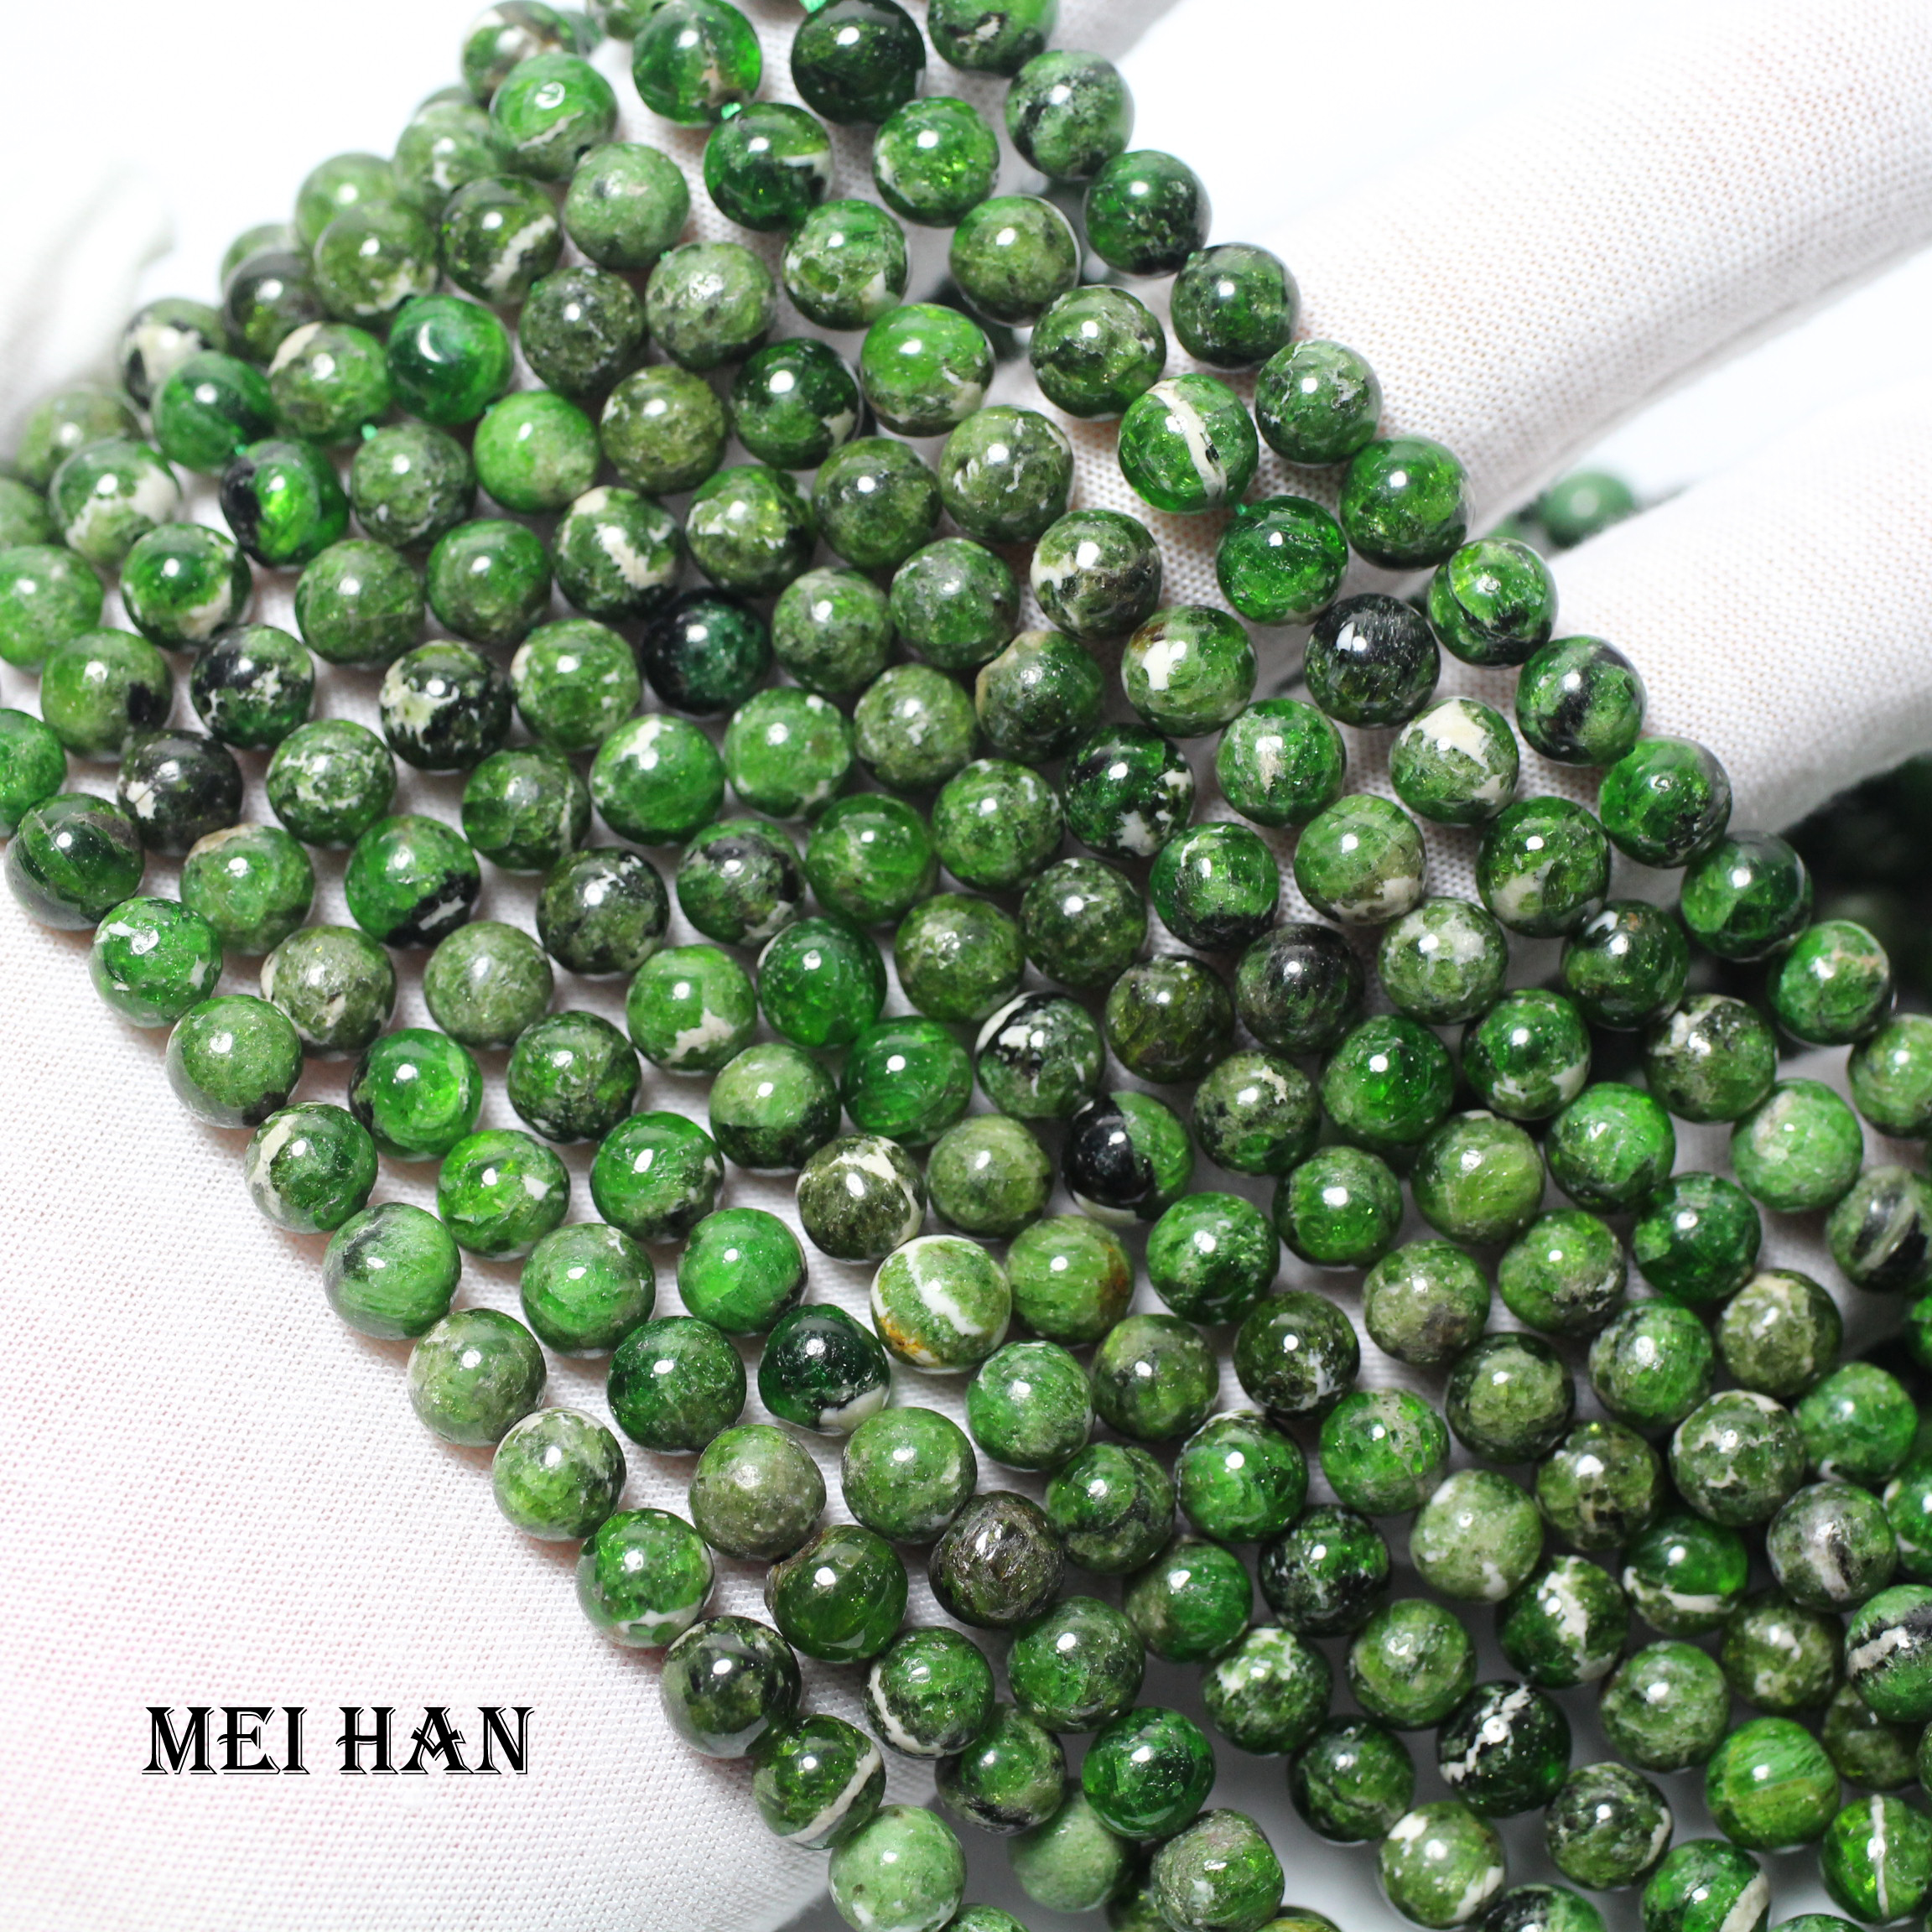 Meihan natural green chrome diopside 7+ 0.2mm smooth round loose stone beads for jewelry making DIY design-in Beads from Jewelry & Accessories